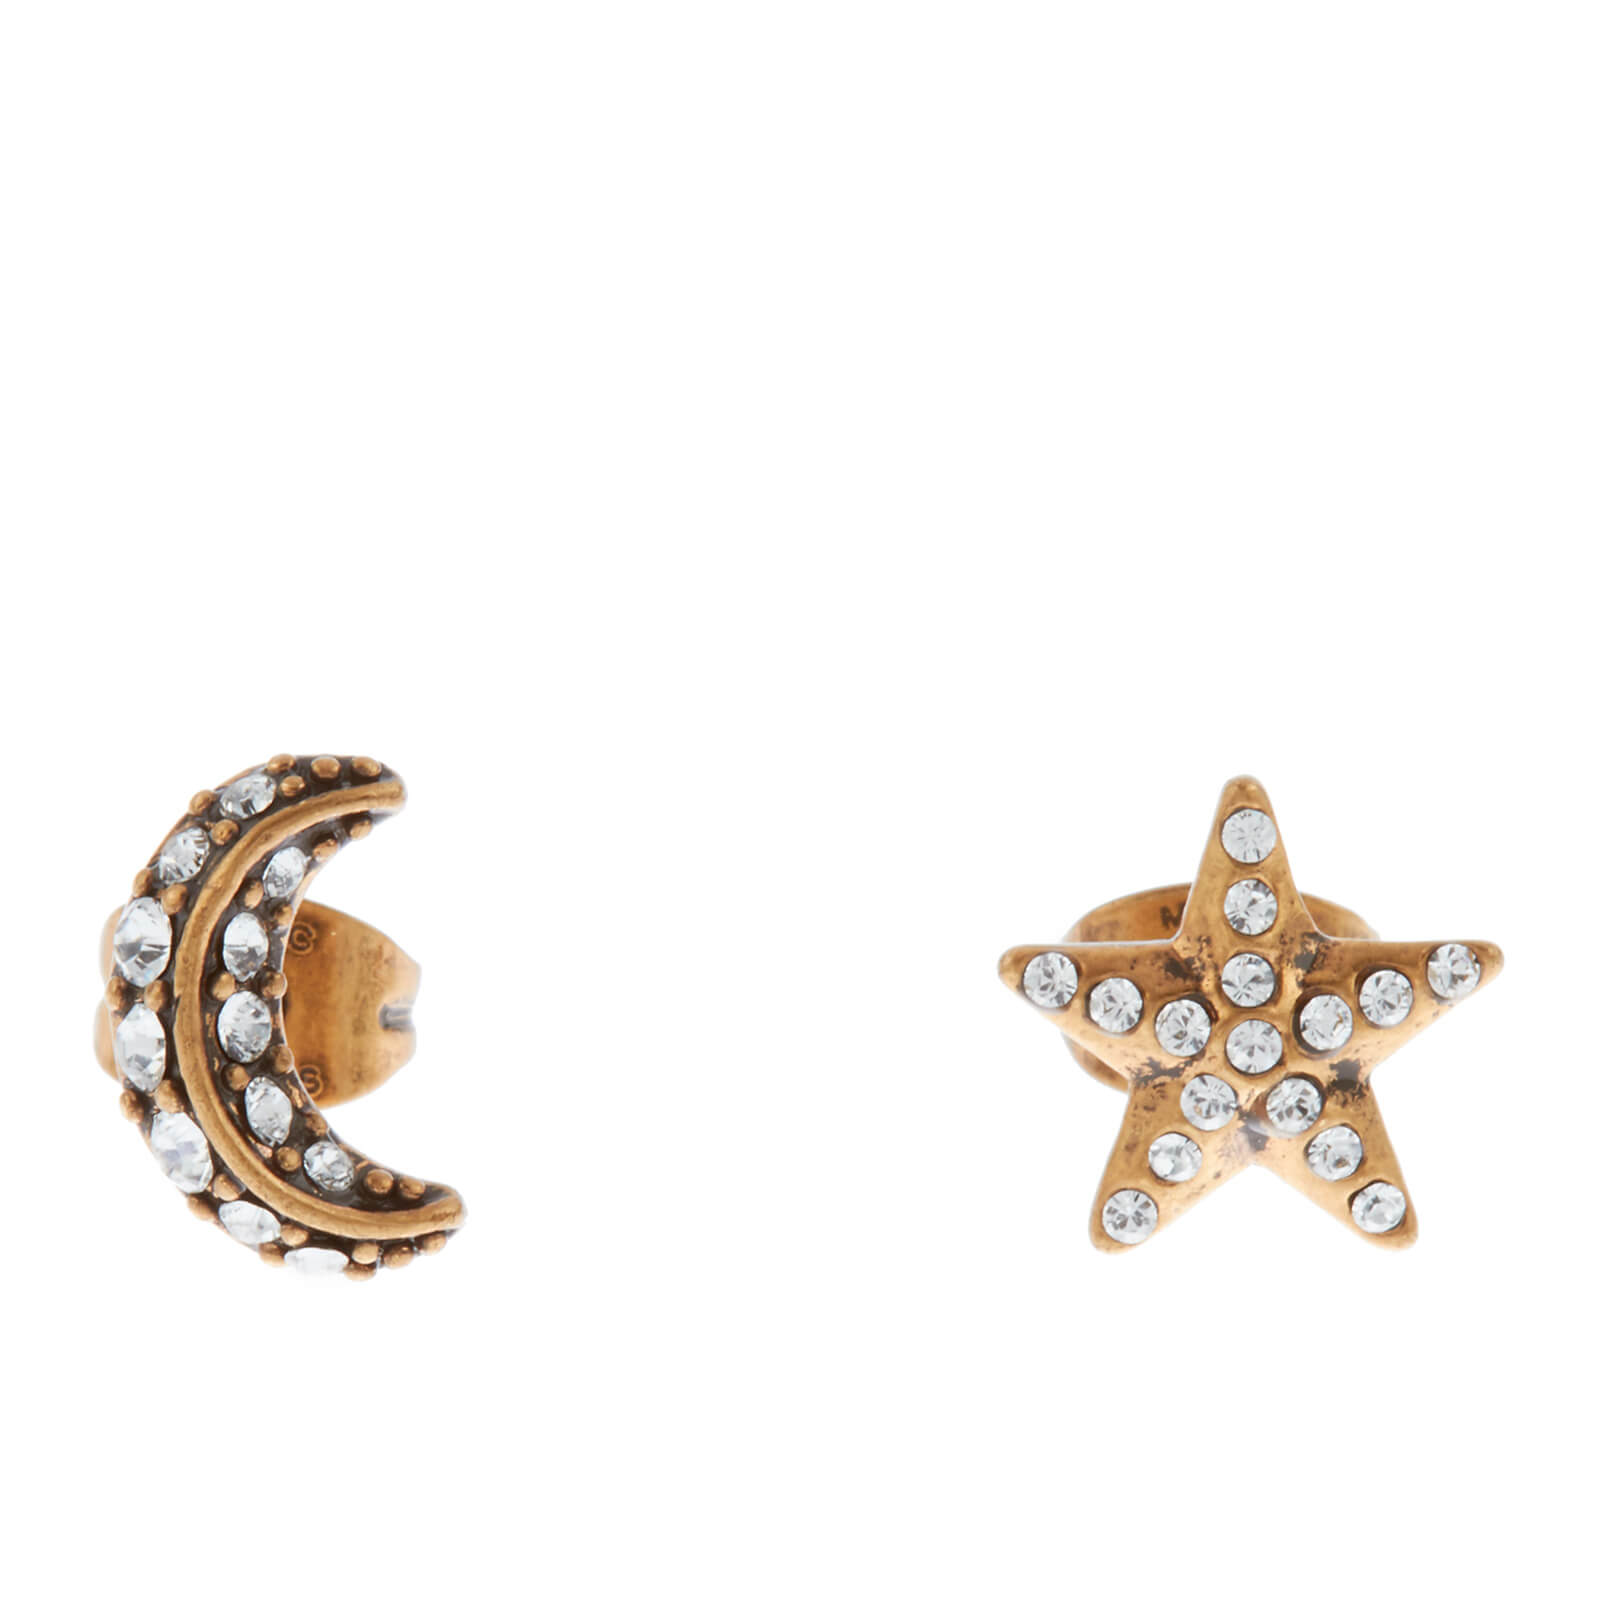 31d56788e Marc Jacobs Women's Moon and Stars Stud Earrings - Crystal/Antique Gold - Free  UK Delivery over £50